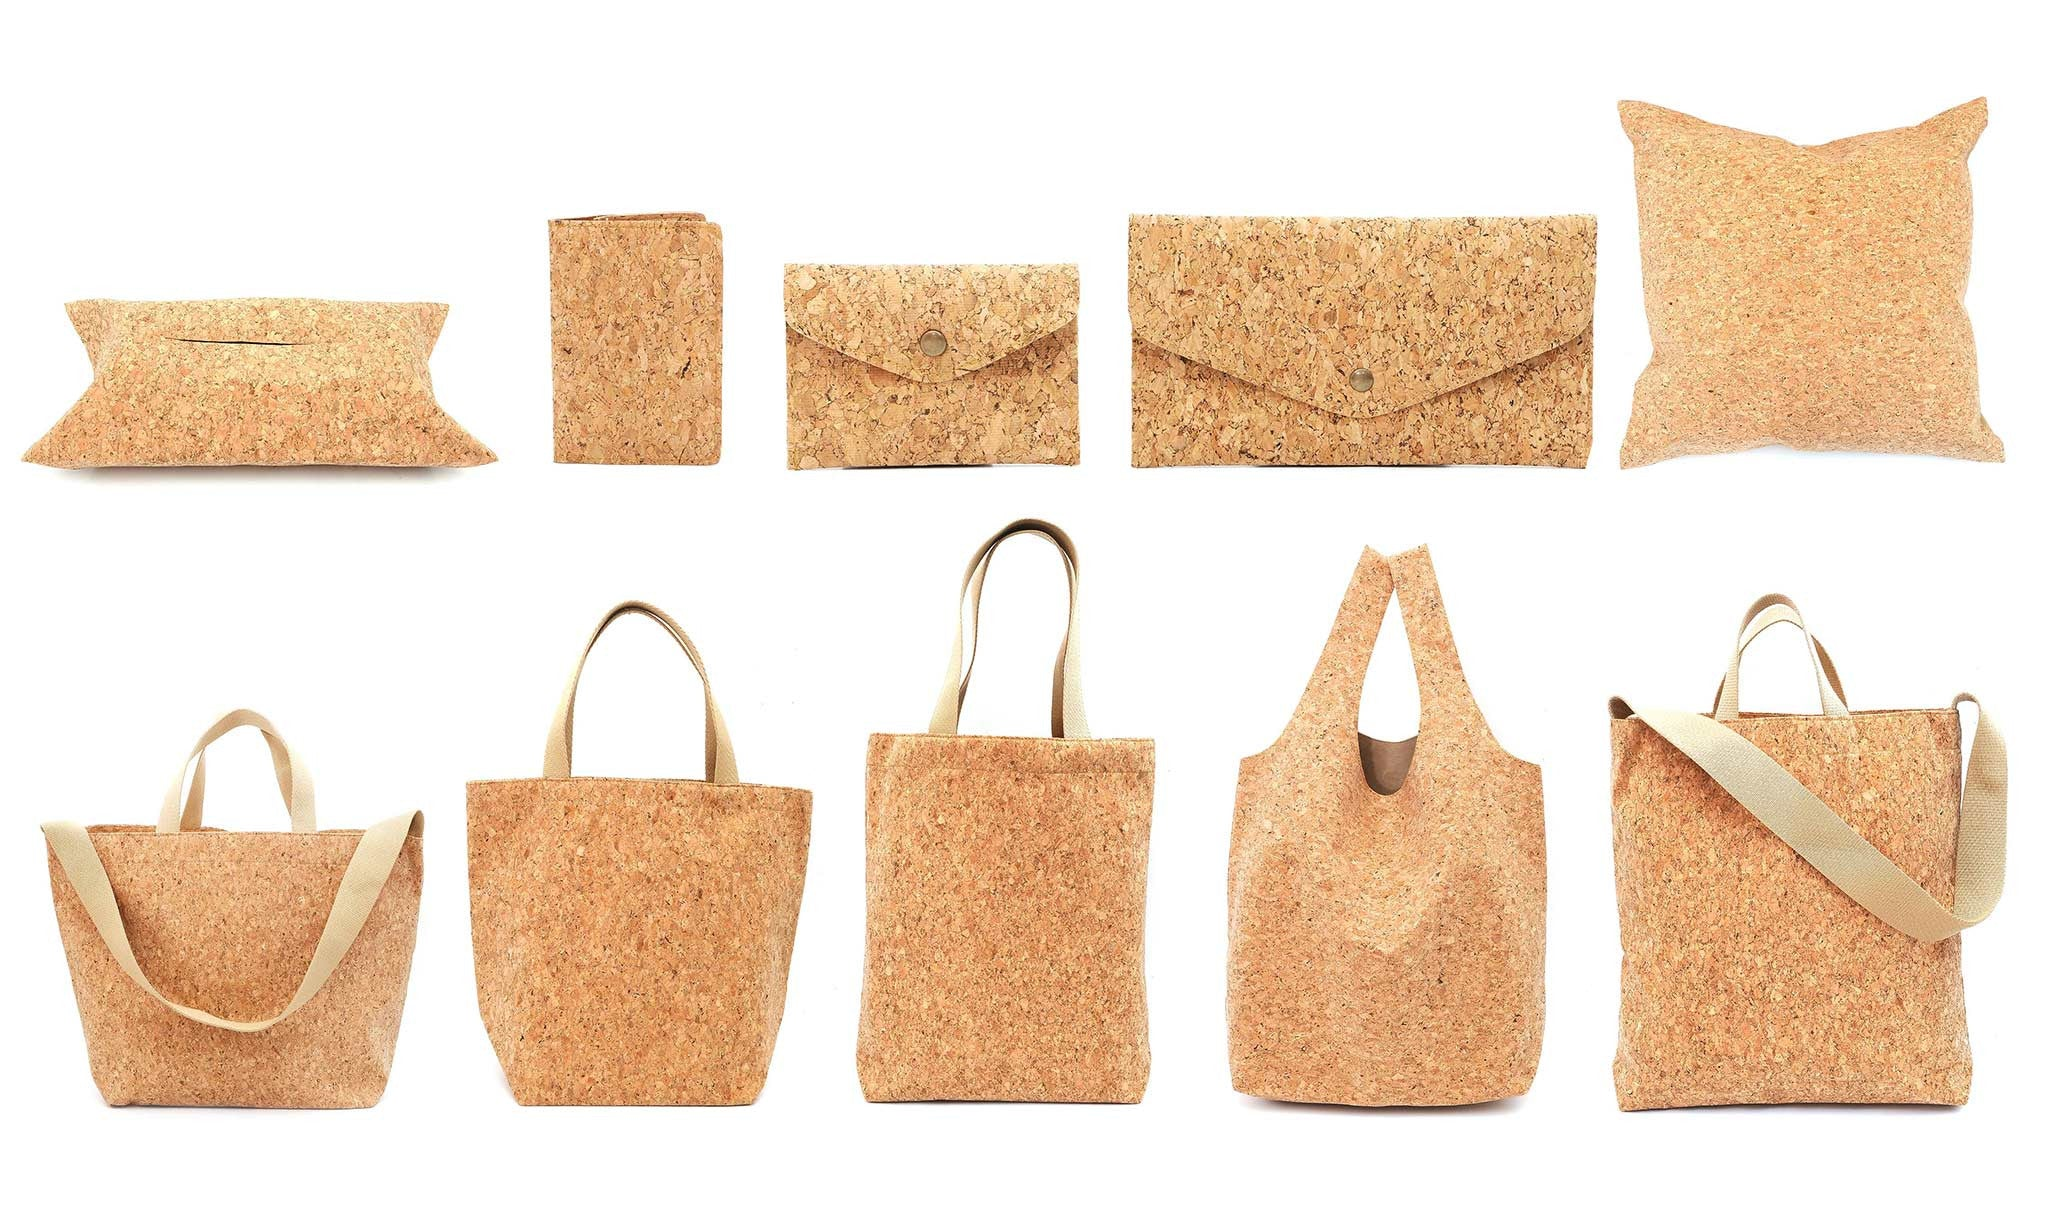 Cork Eco / Vegan Friendly Sustainable Handmade Bags Wallets Passport Cover Tote Bags